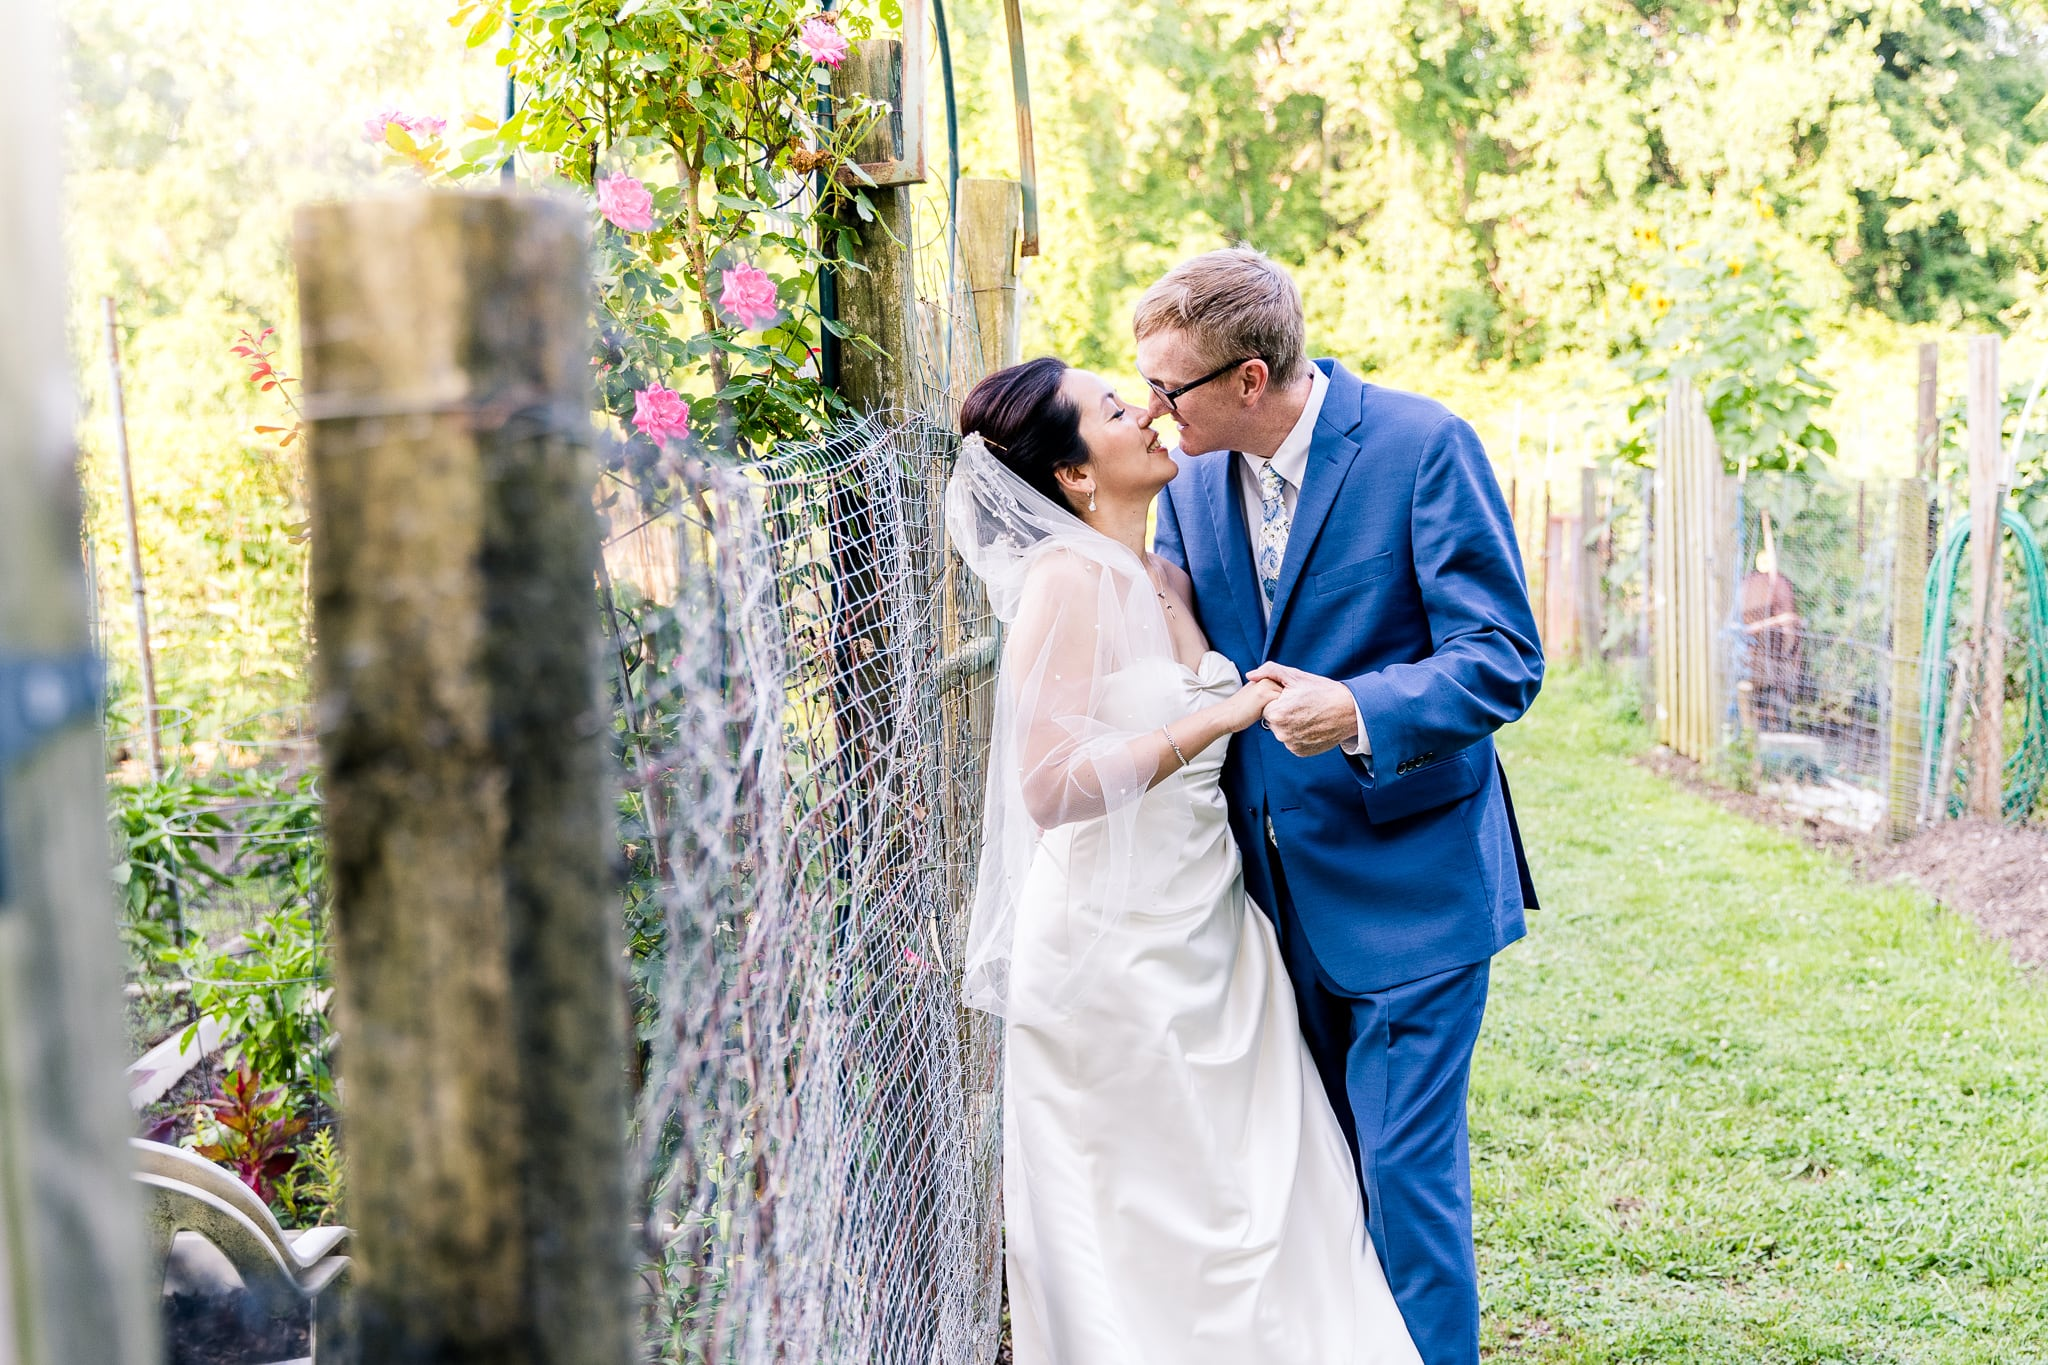 A Taiwanese bride kisses her groom in the community gardens at Nottoway Park after their wedding in Vienna, Northern Virginia